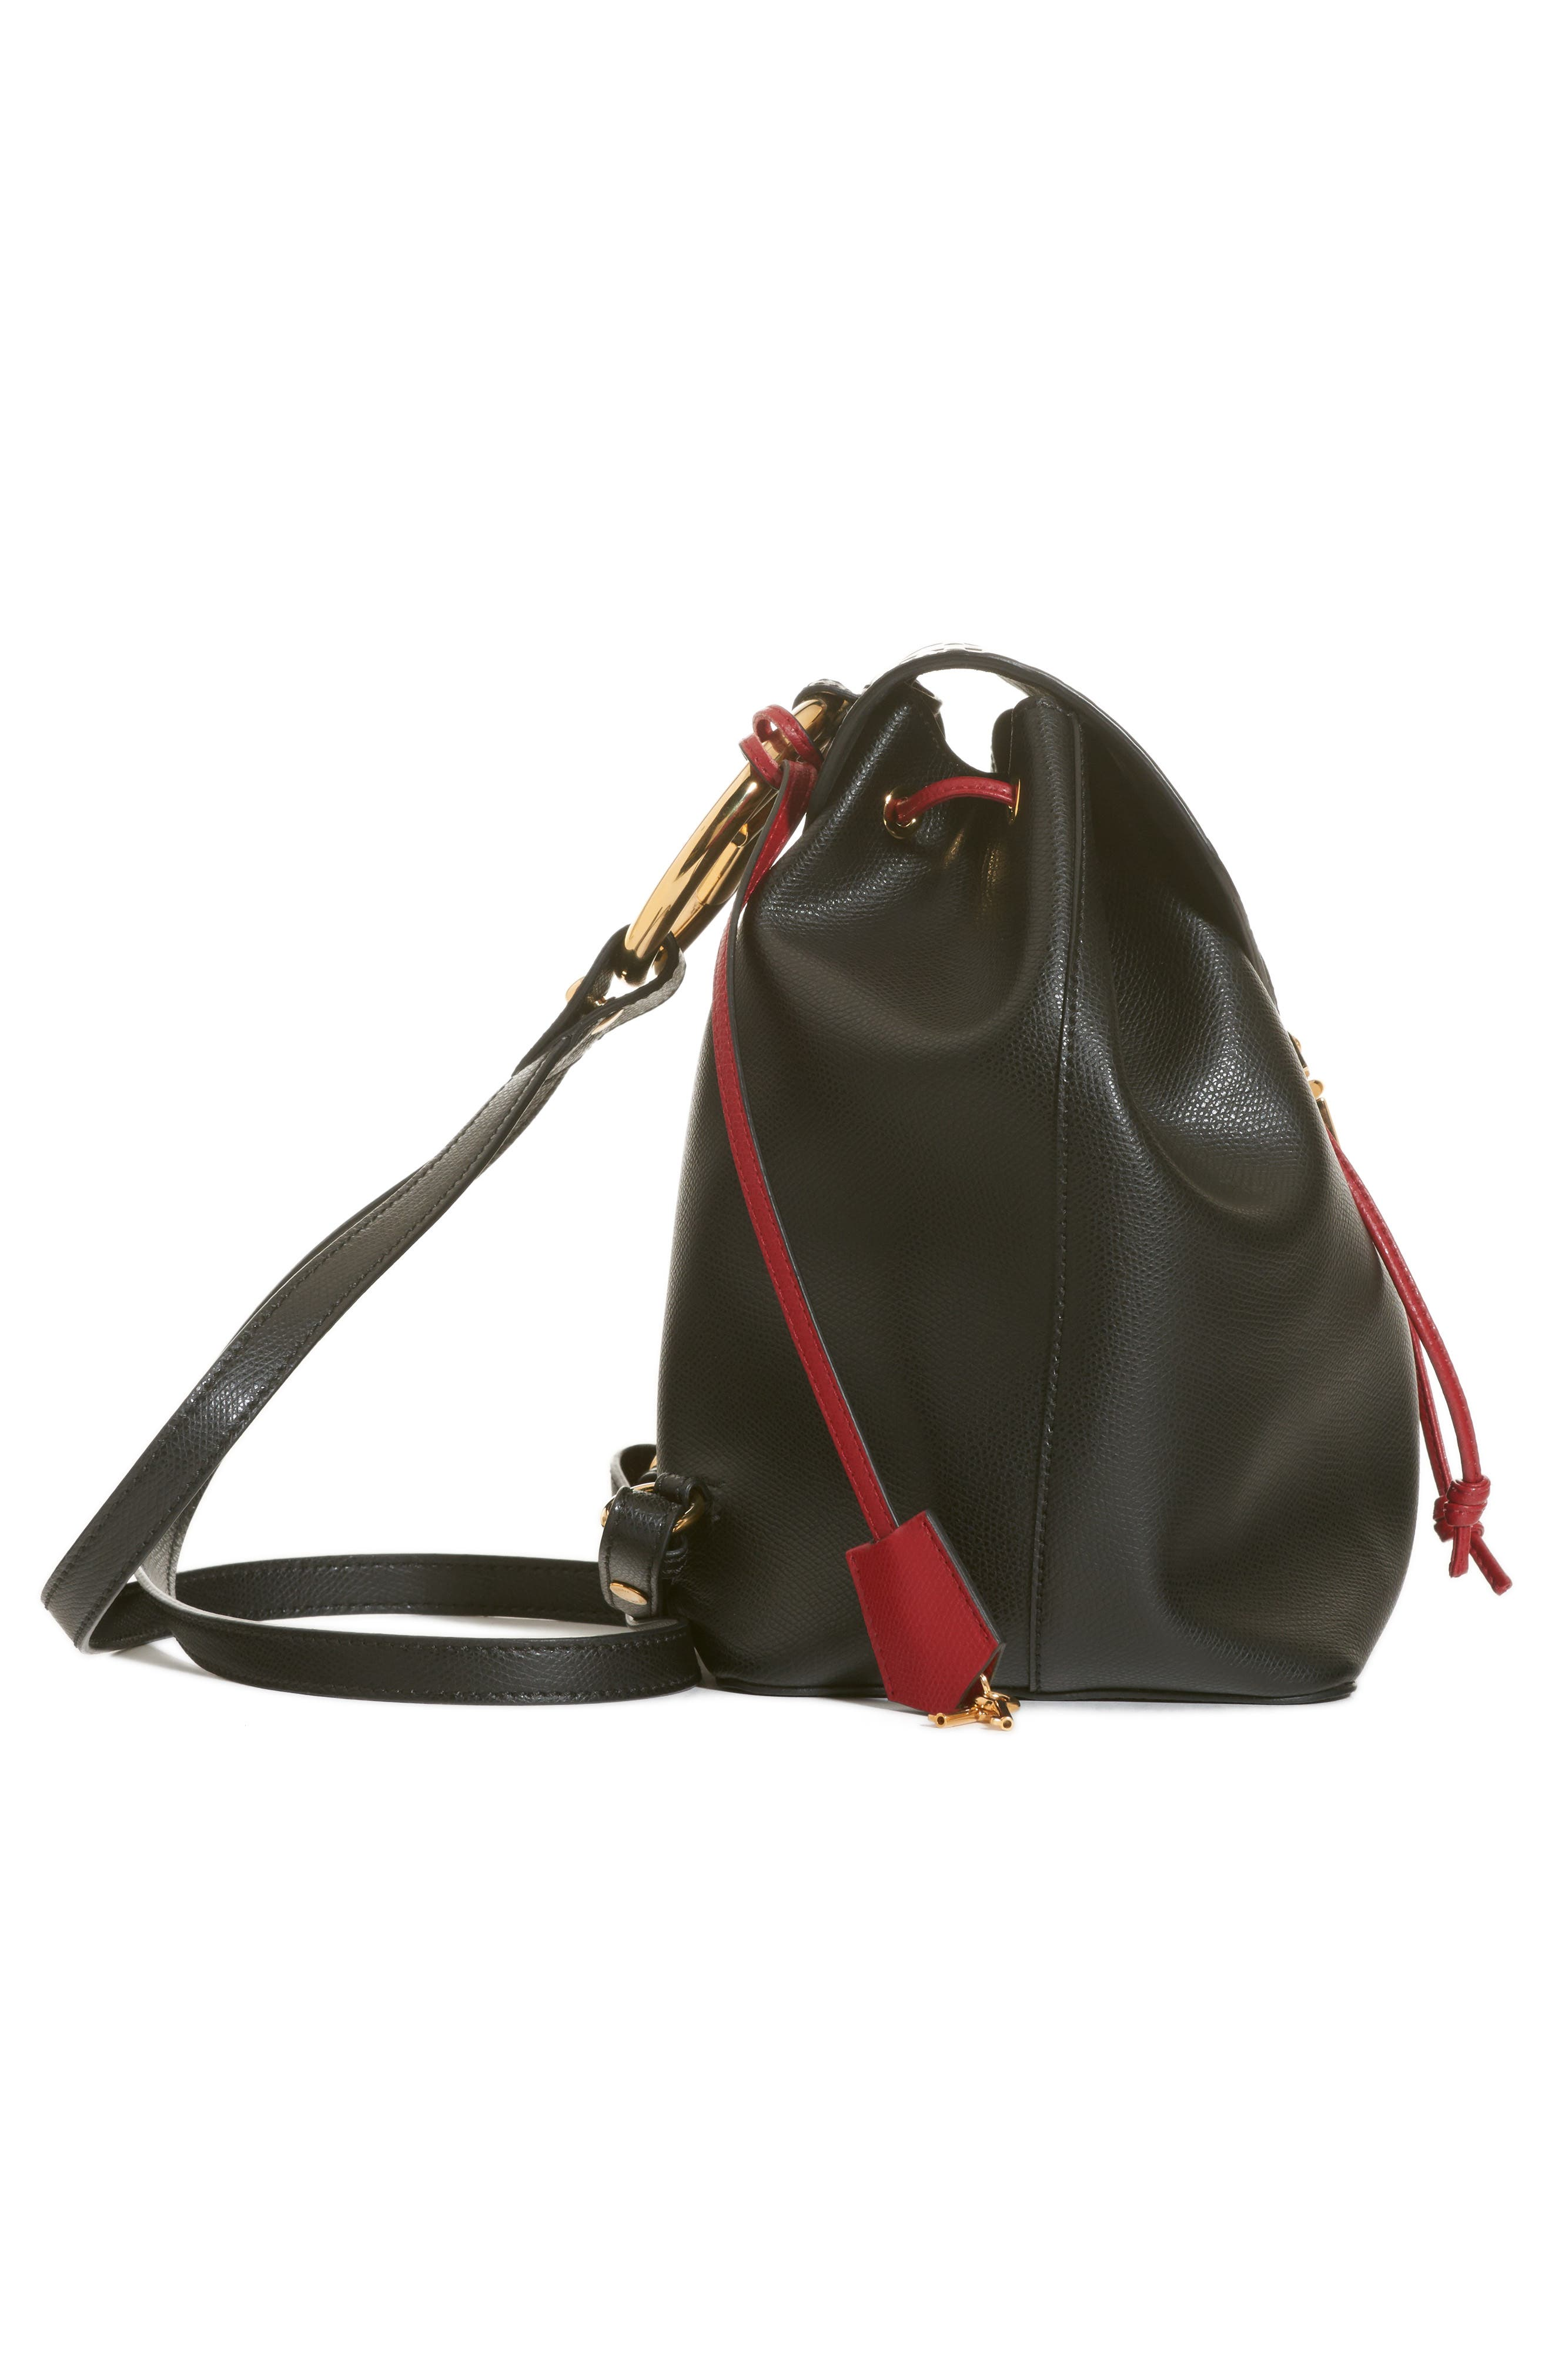 Cruise Bicolor Calfskin Leather Backpack,                             Alternate thumbnail 5, color,